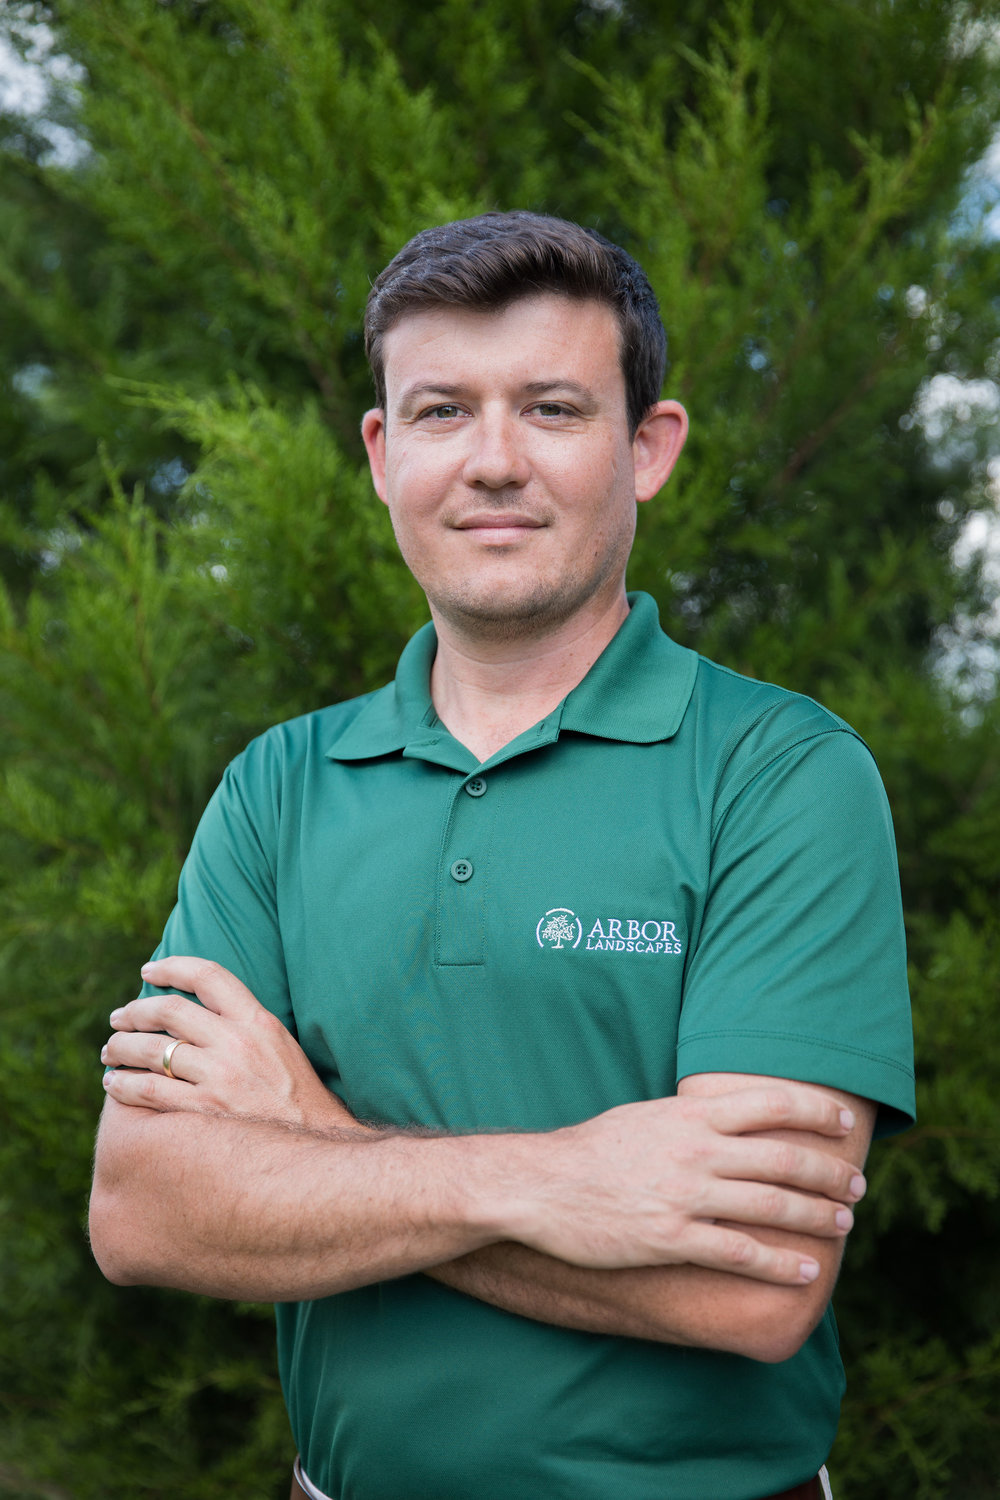 Meet the Owners: - Jake and Alexis founded Arbor Landscapes in 2013. Jake is originally from Sebring, FL and holds a business degree from Florida State University. He grew up mowing lawns in his neighborhood and continued to do so through college. His passion for the outdoors and understanding of Florida landscaping ultimately led him to Arbor Landscapes. His lovely wife Alexis grew up in Sarasota and graduated from the University of Florida with a degree in advertising. They enjoy boating and kayaking in Sarasota Bay, eating at local restaurants, and catching sunsets with their goldendoodle Olive.Jake and Alexis take pride in serving the Sarasota community and growing their family here. They are active members of the Ringling Museum of Art, Marie Selby Botanical Gardens, Junior League of Sarasota (Alexis), Sertoma Club of Greater Sarasota (Jake) and BNI-Past Chapter President (Jake).